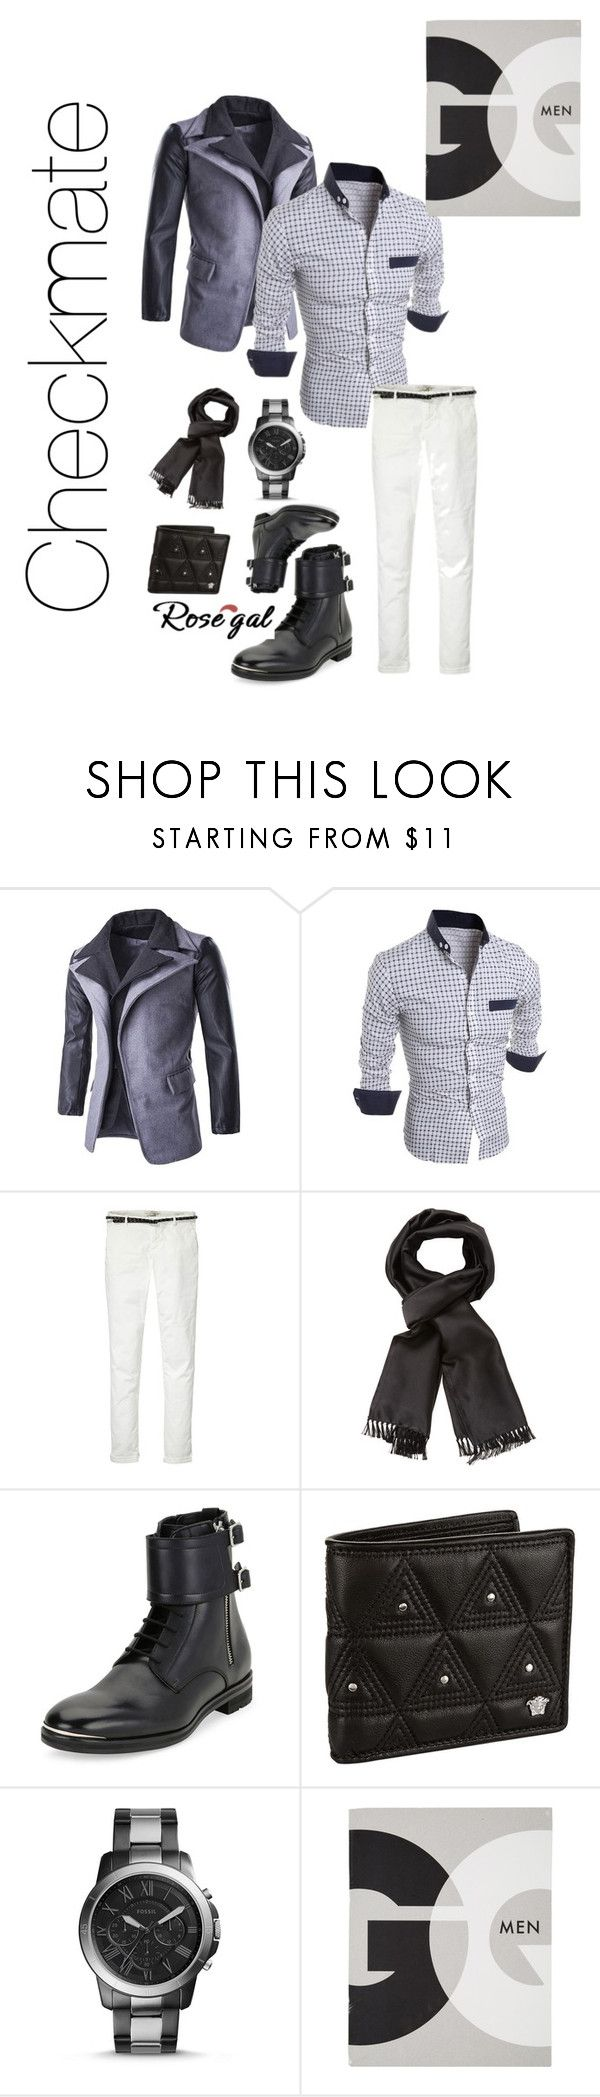 """""""Checkmate"""" by scope-stilettos ❤ liked on Polyvore featuring Maison Scotch, Tom Ford, Alexander McQueen, Versace, FOSSIL, Assouline Publishing, men's fashion and menswear"""